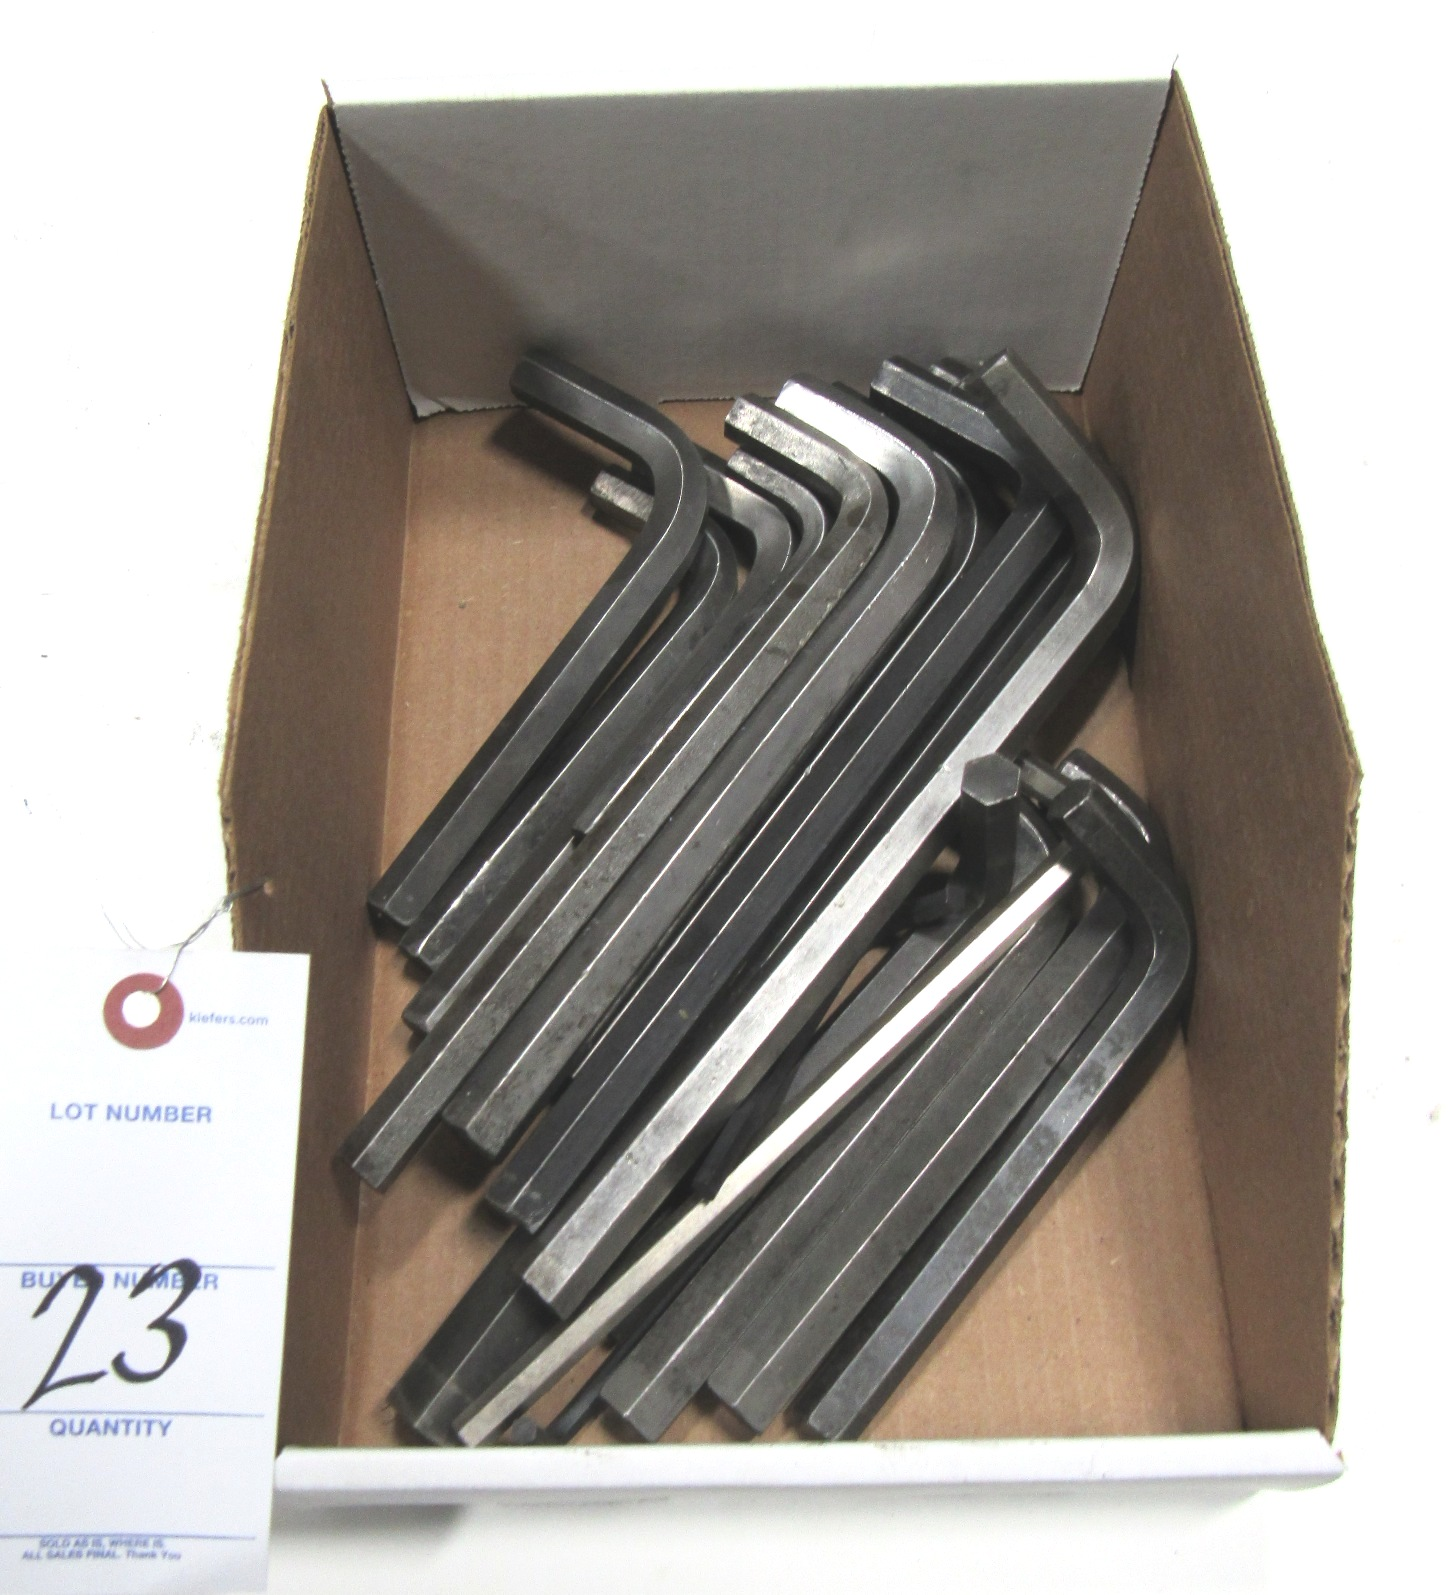 Lot 23 - Lot Asst Allen Wrenches